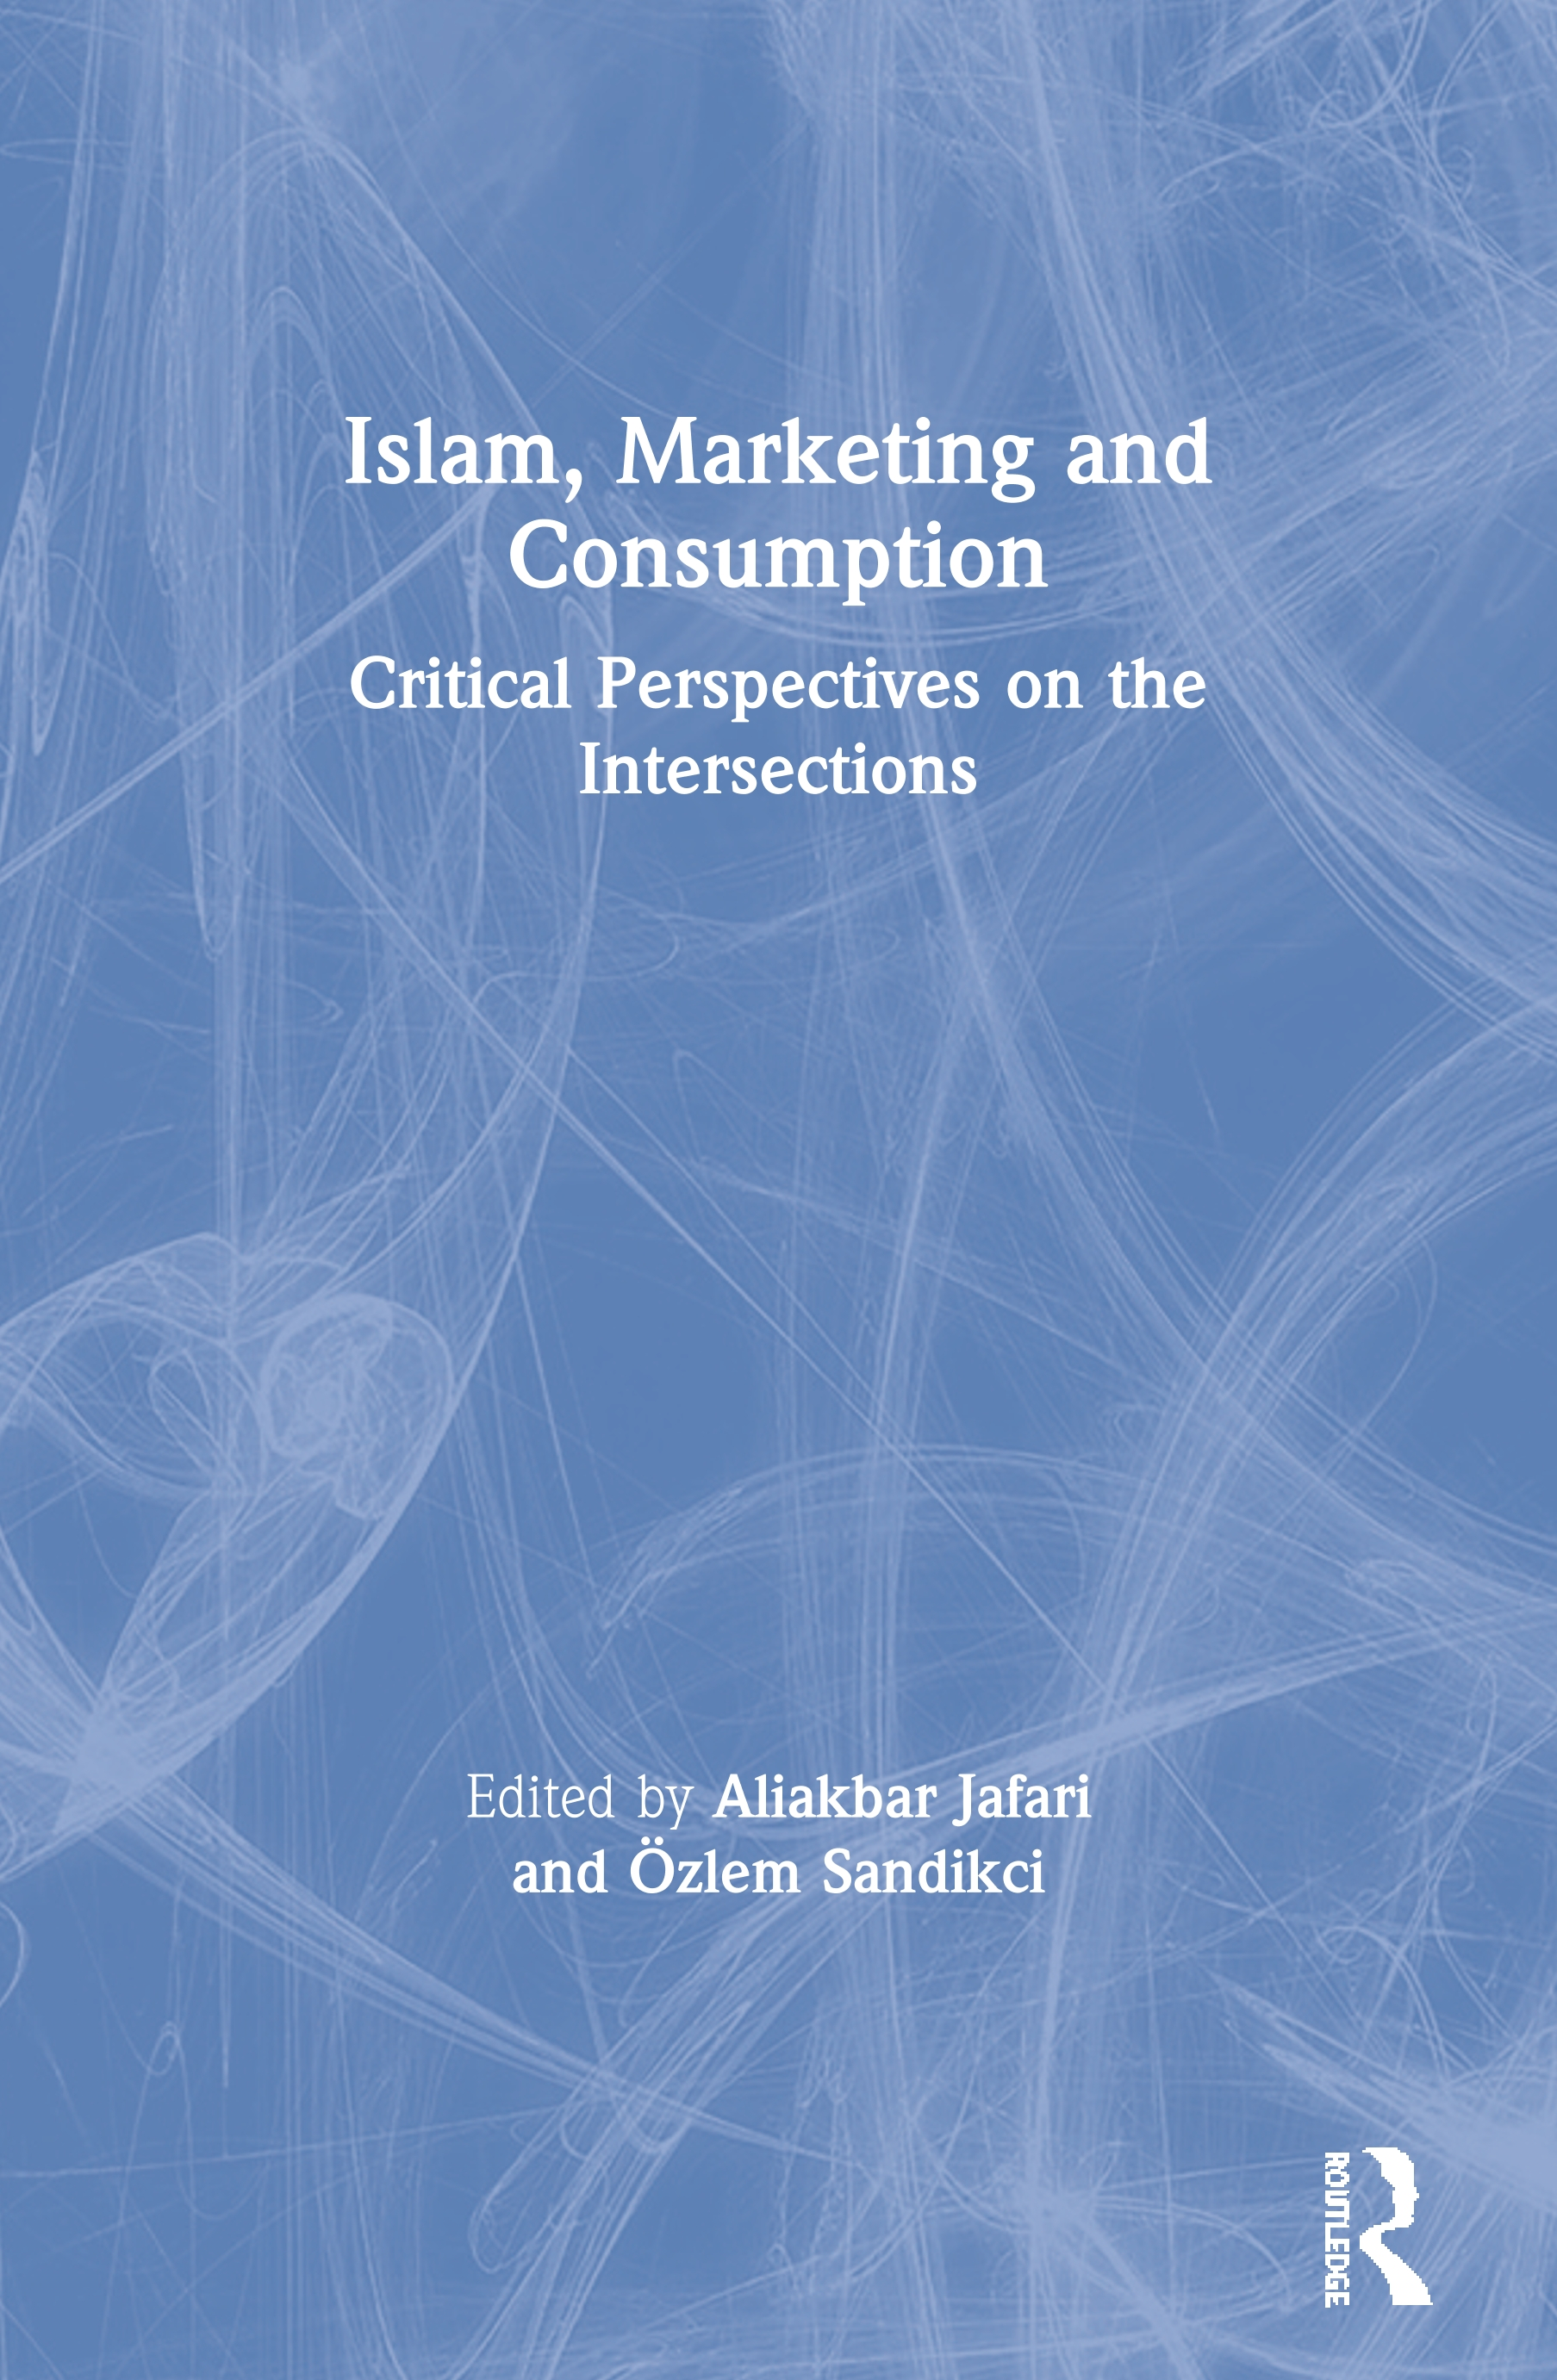 Islam, Marketing and Consumption: Critical Perspectives on the Intersections book cover